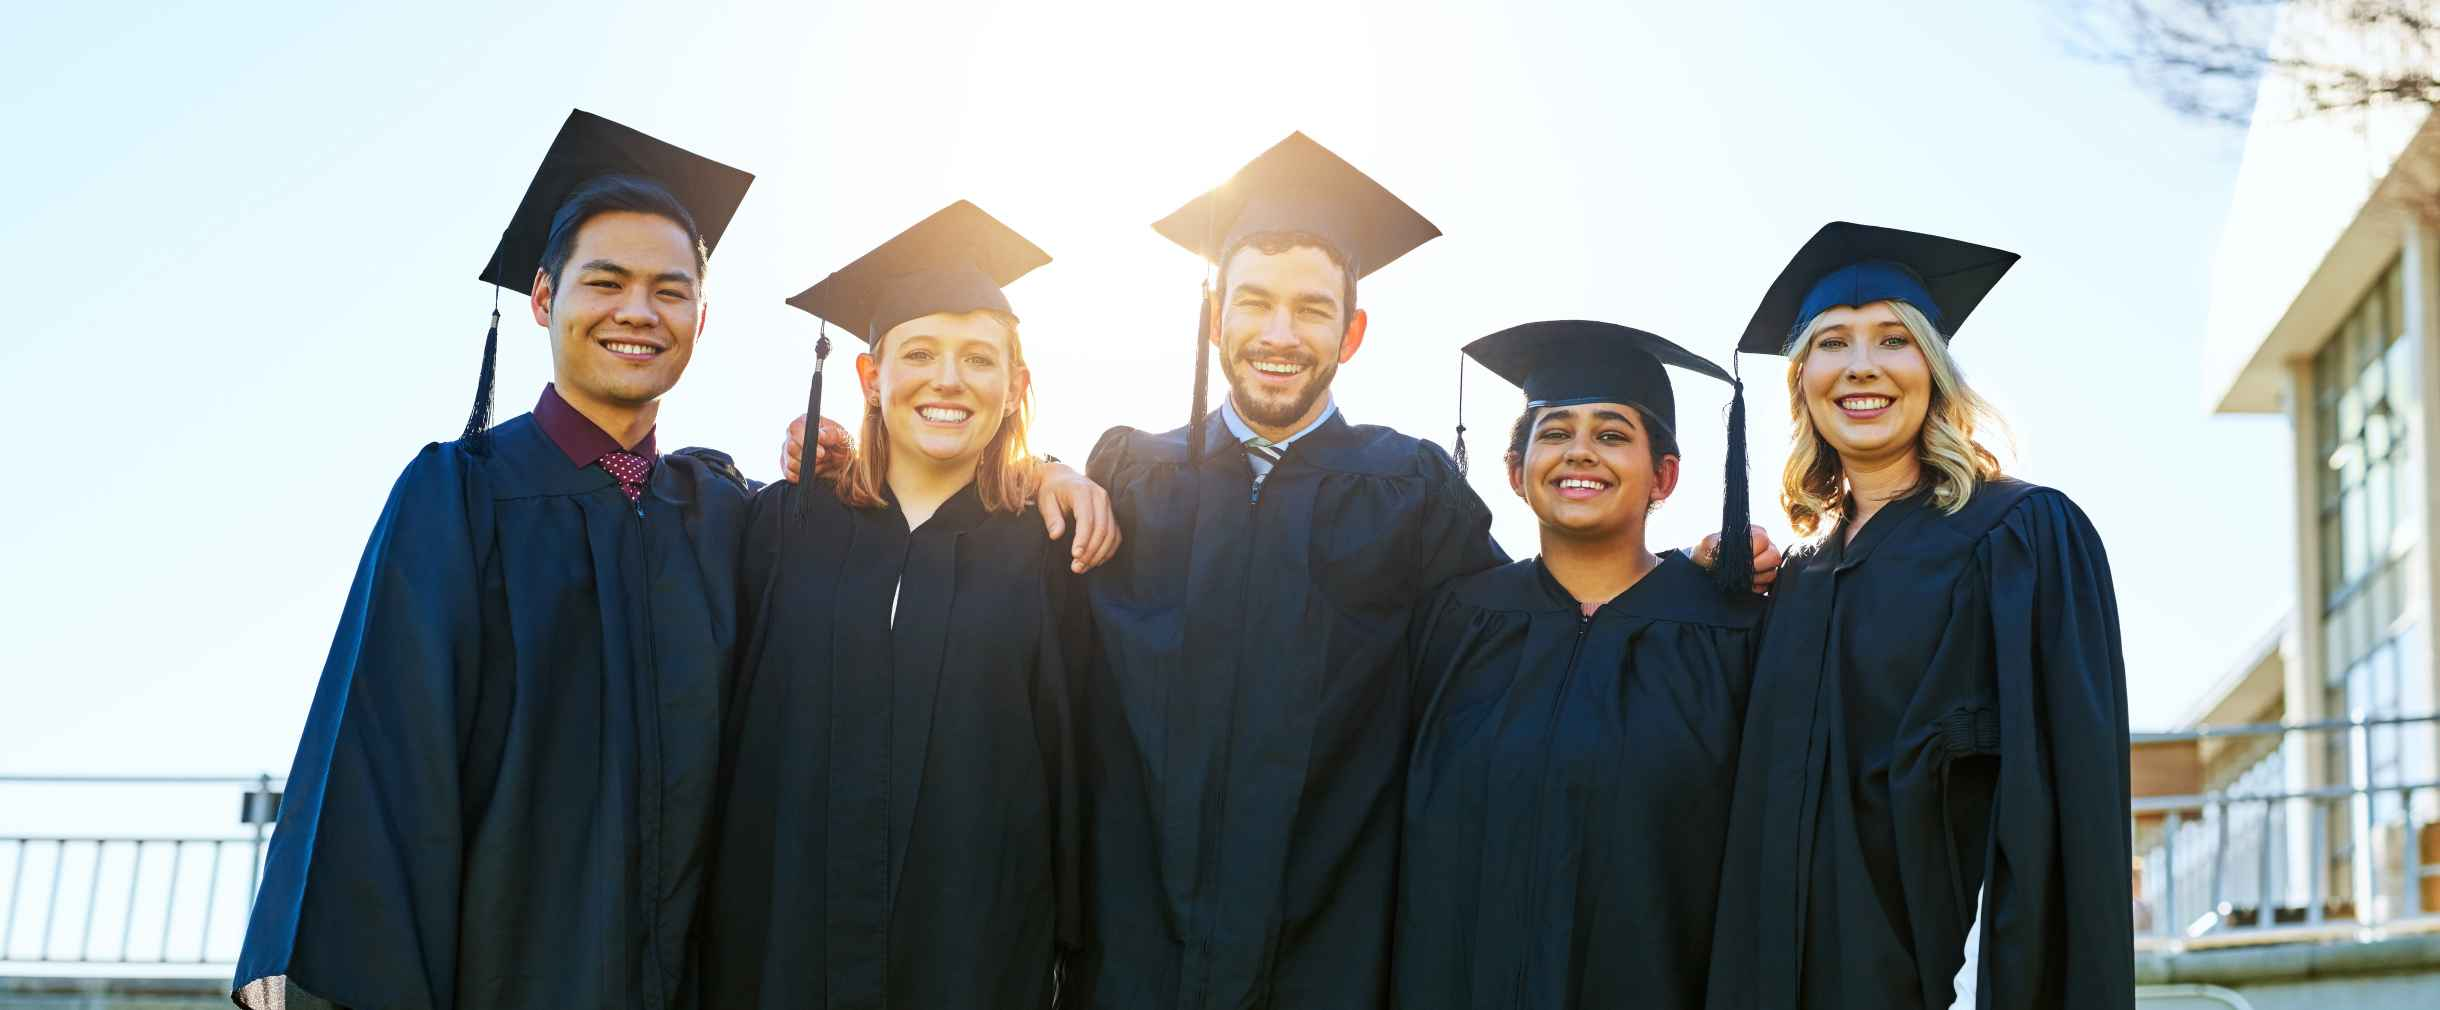 A Guide For Graduate Students Educated Outside the US